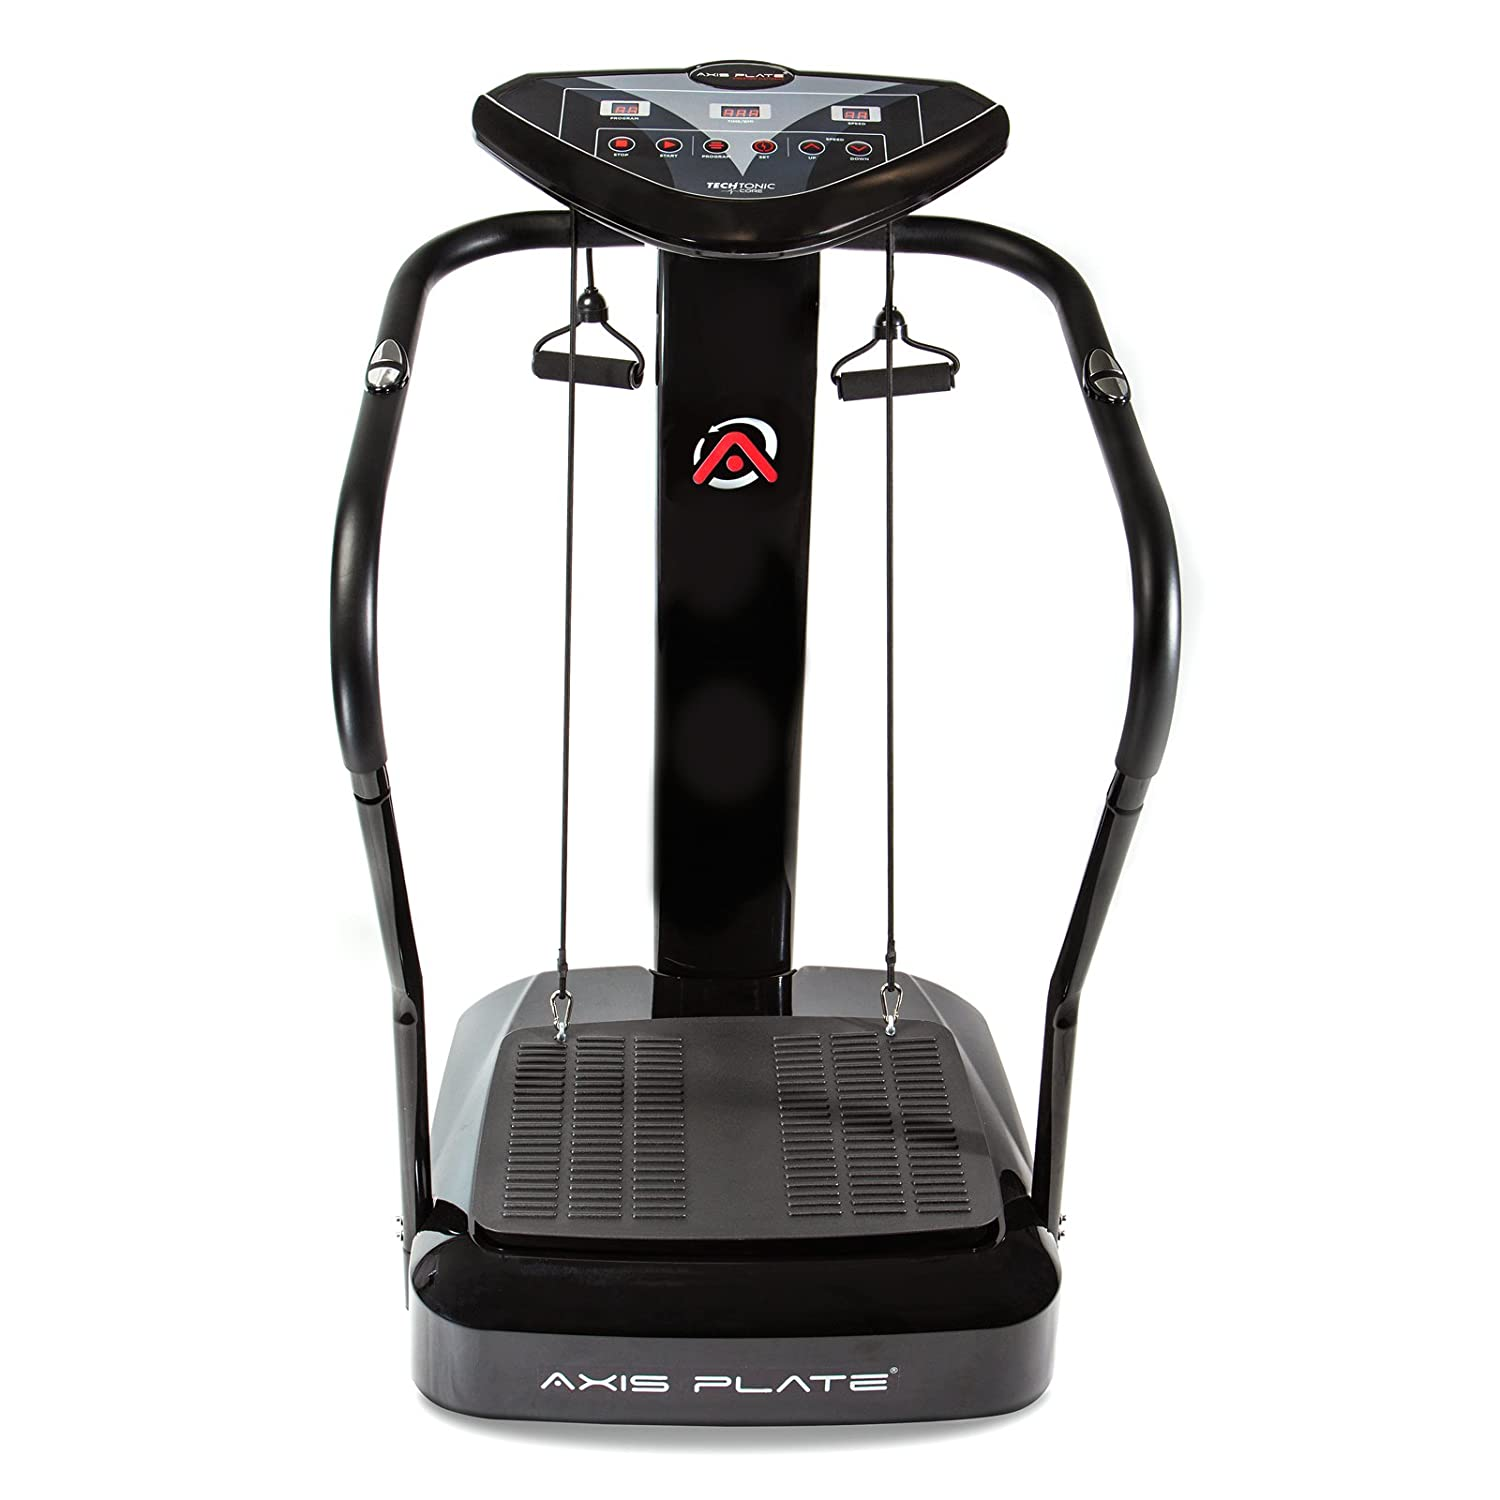 Best Vibration Machines To Buy